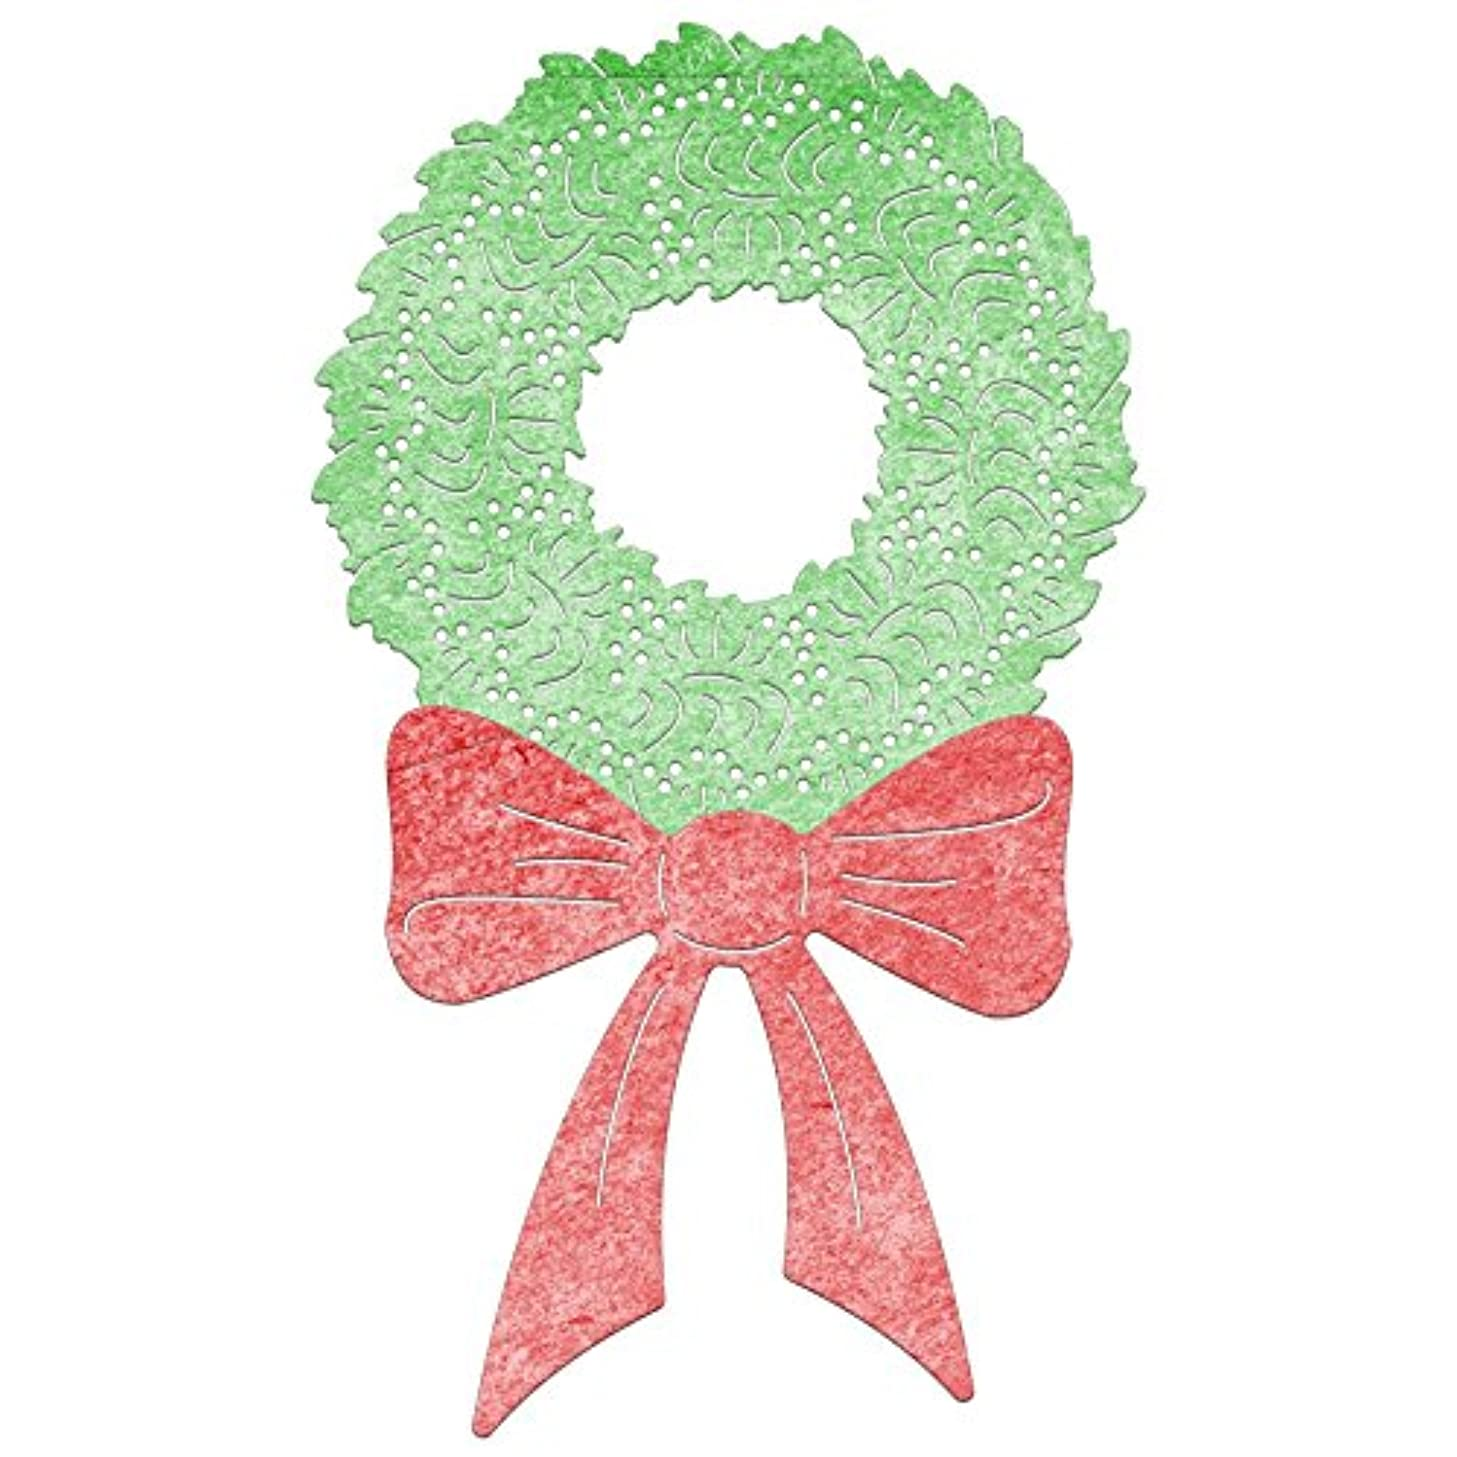 Cheery Lynn Designs DL143 Ornamental Wreath & Bow